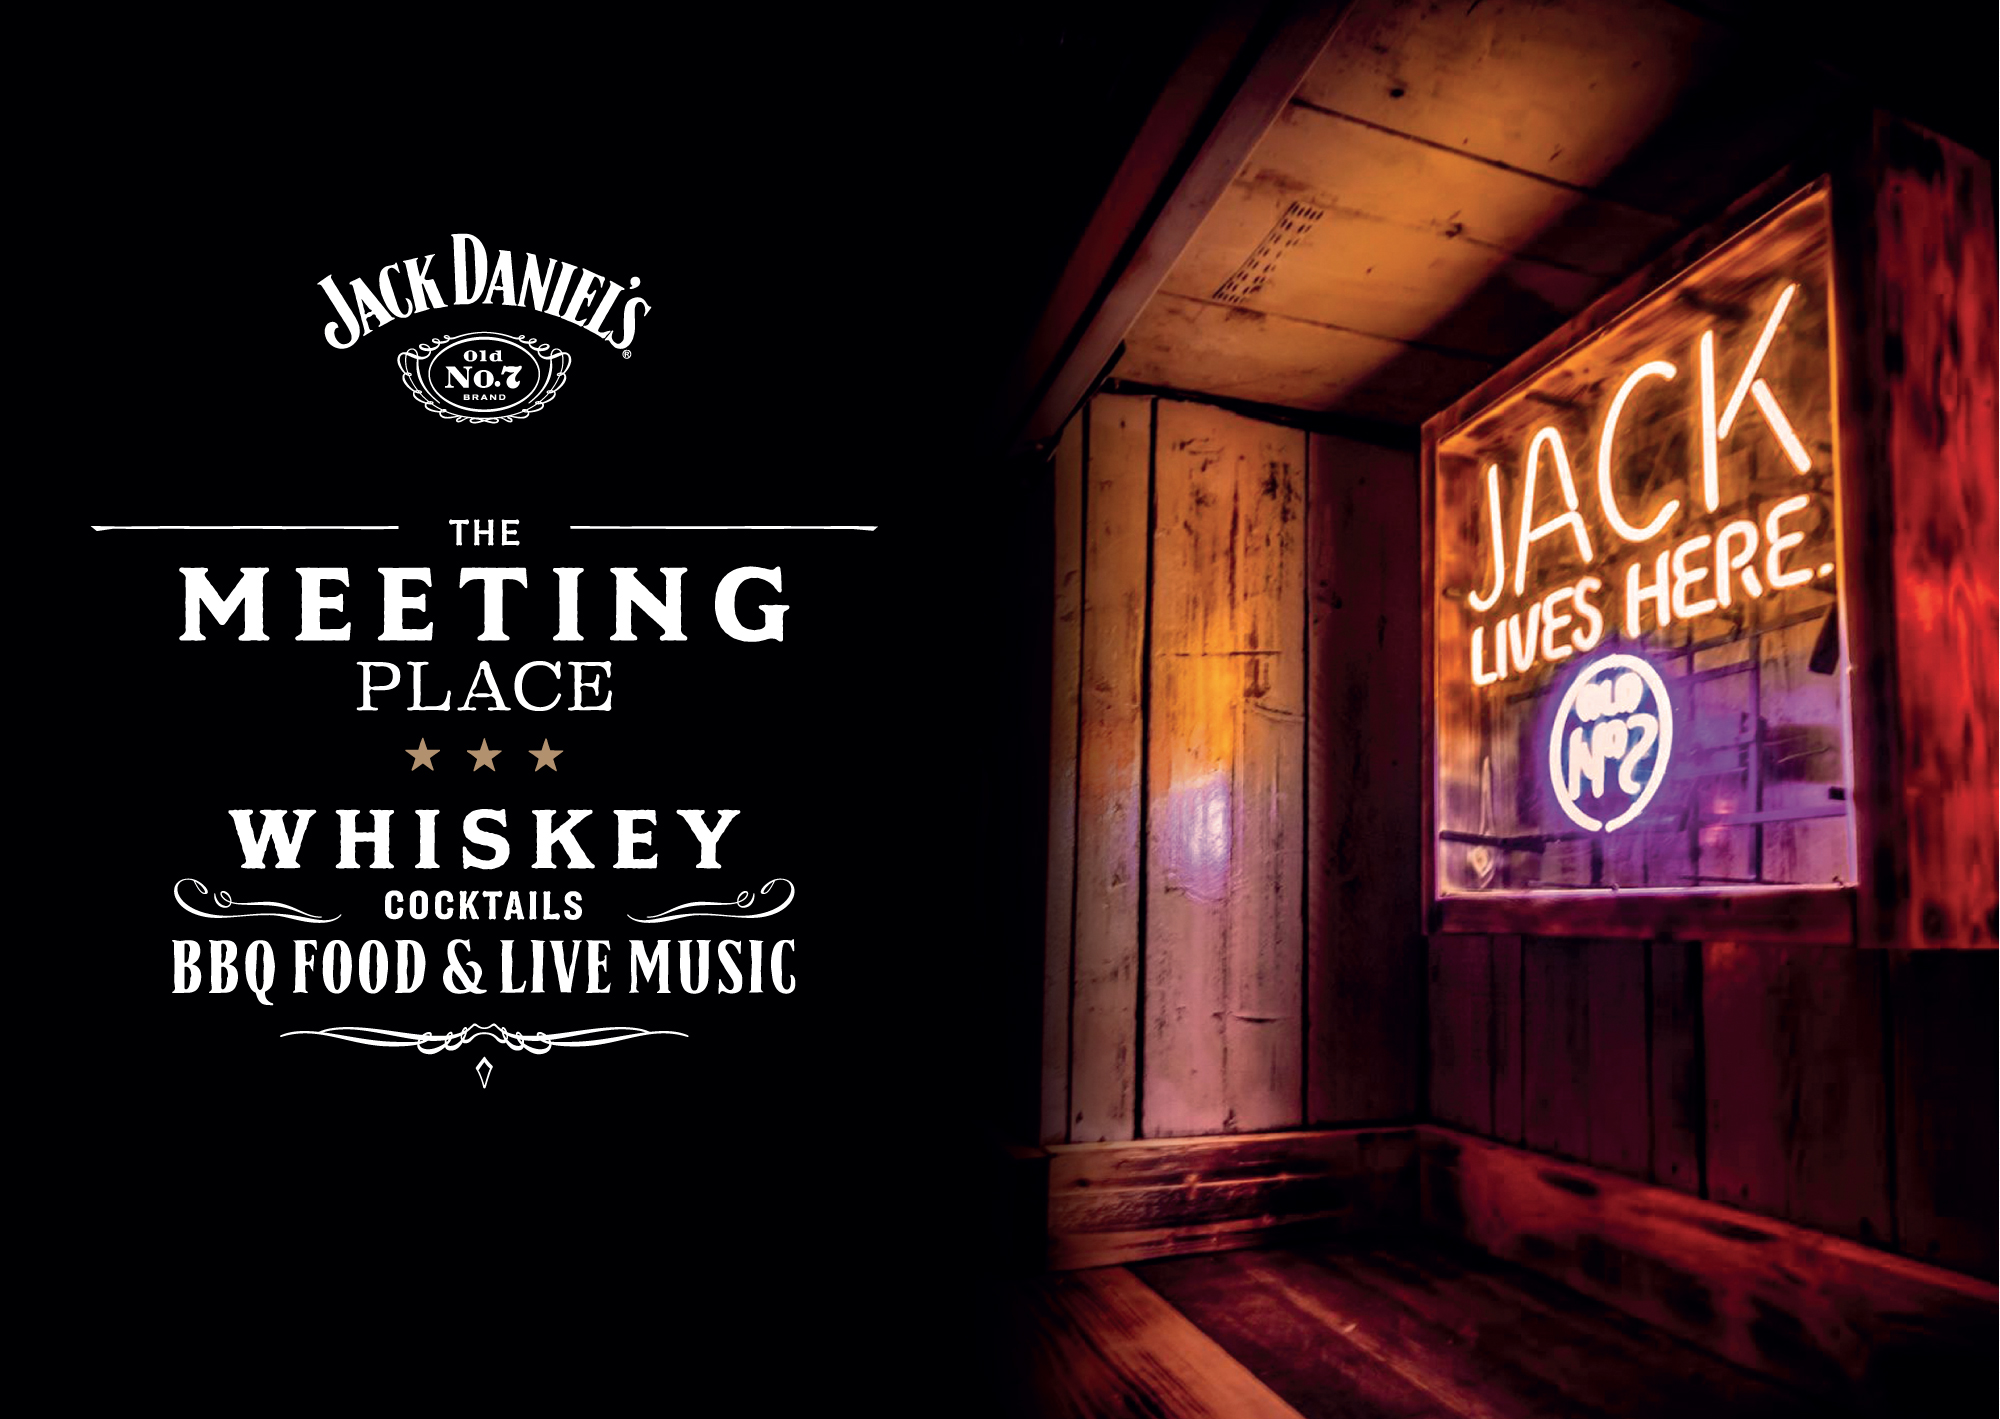 News: You don't know Jack – yet. Jack Daniel's is popping up with The Meeting Place